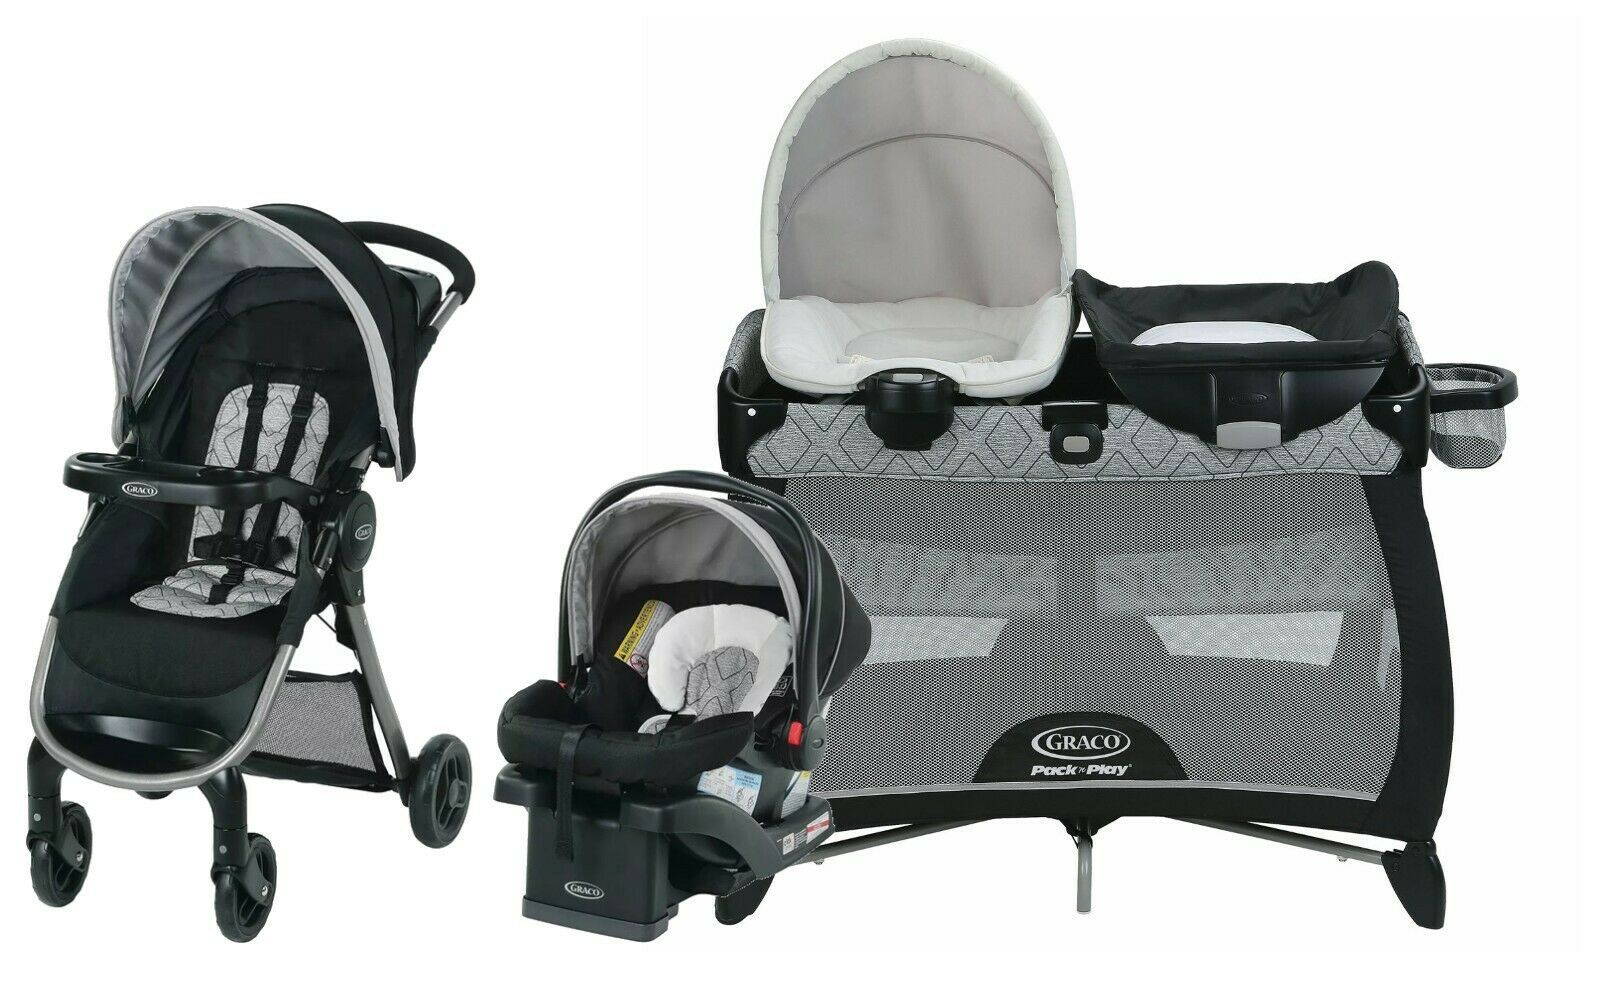 Graco Baby Stroller With Car Seat Infant Playard Travel System